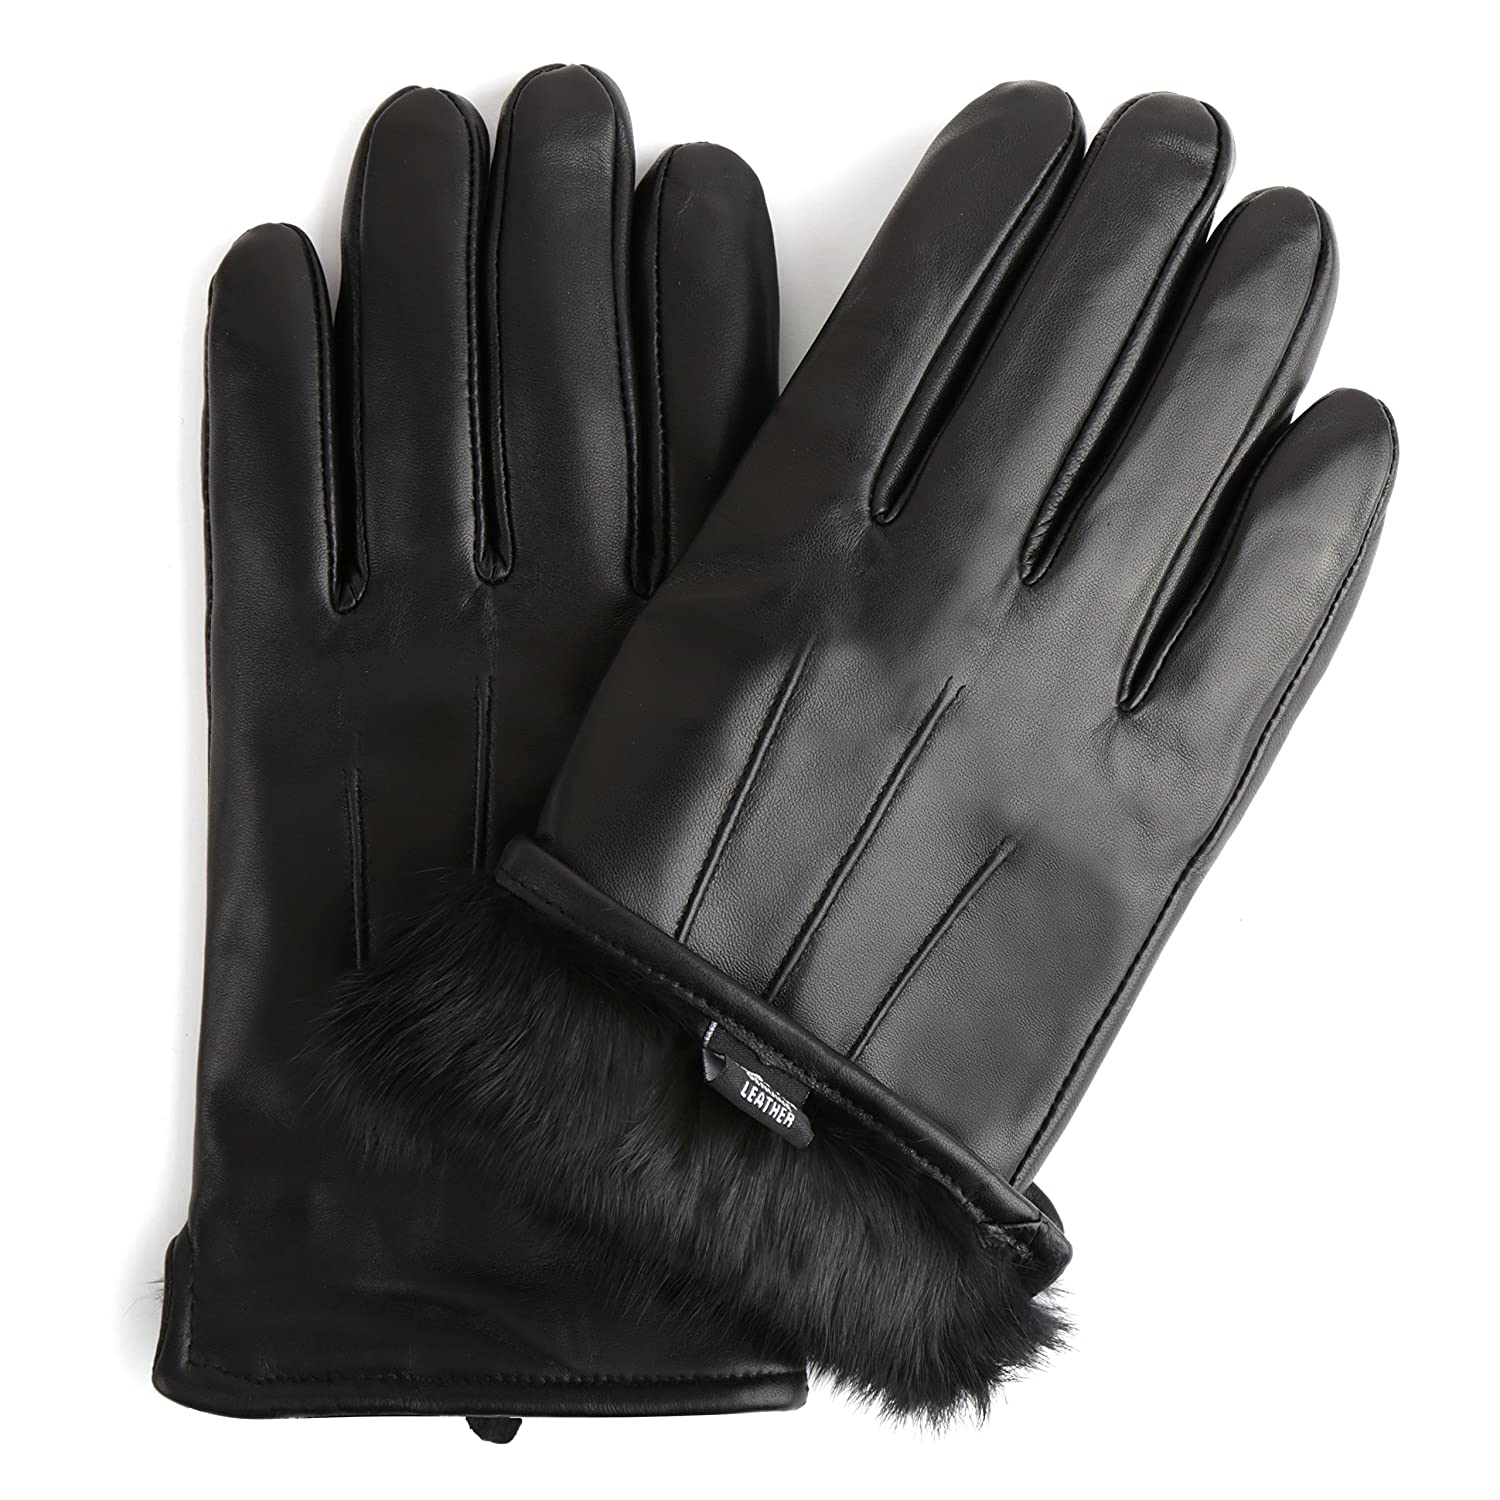 Mens leather gloves rabbit fur lined - Sandory Men S Luxurious Genuine Leather With Rabbit Fur Lined Gloves X Small Black Fur At Amazon Men S Clothing Store